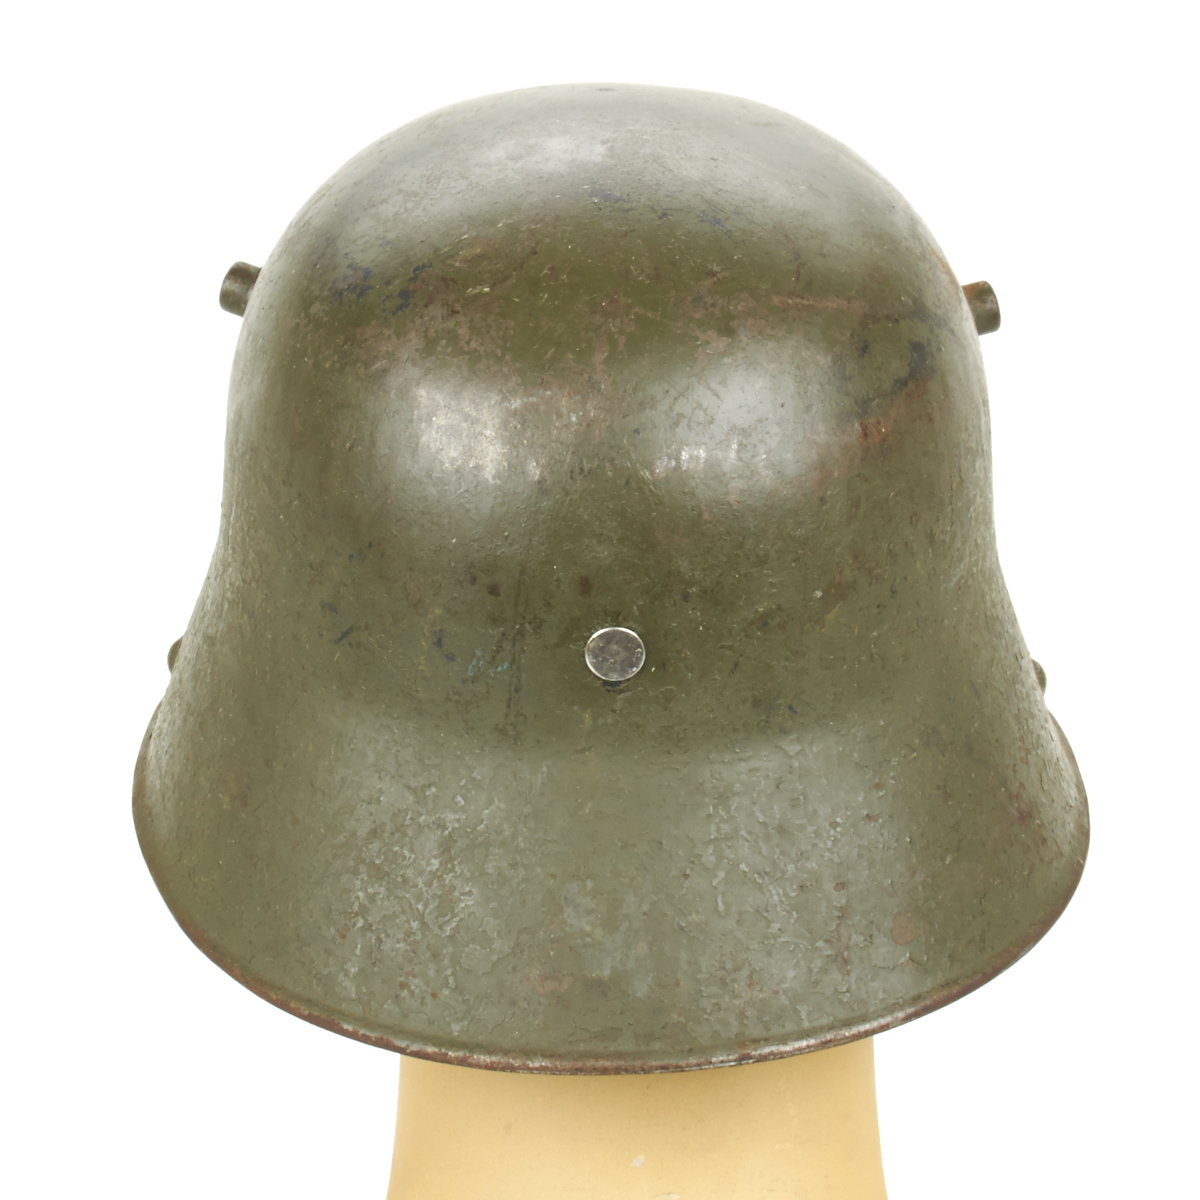 Details about Original Imperial German WWI M16 Stahlhelm Helmet with  Markings- Shell Size 64